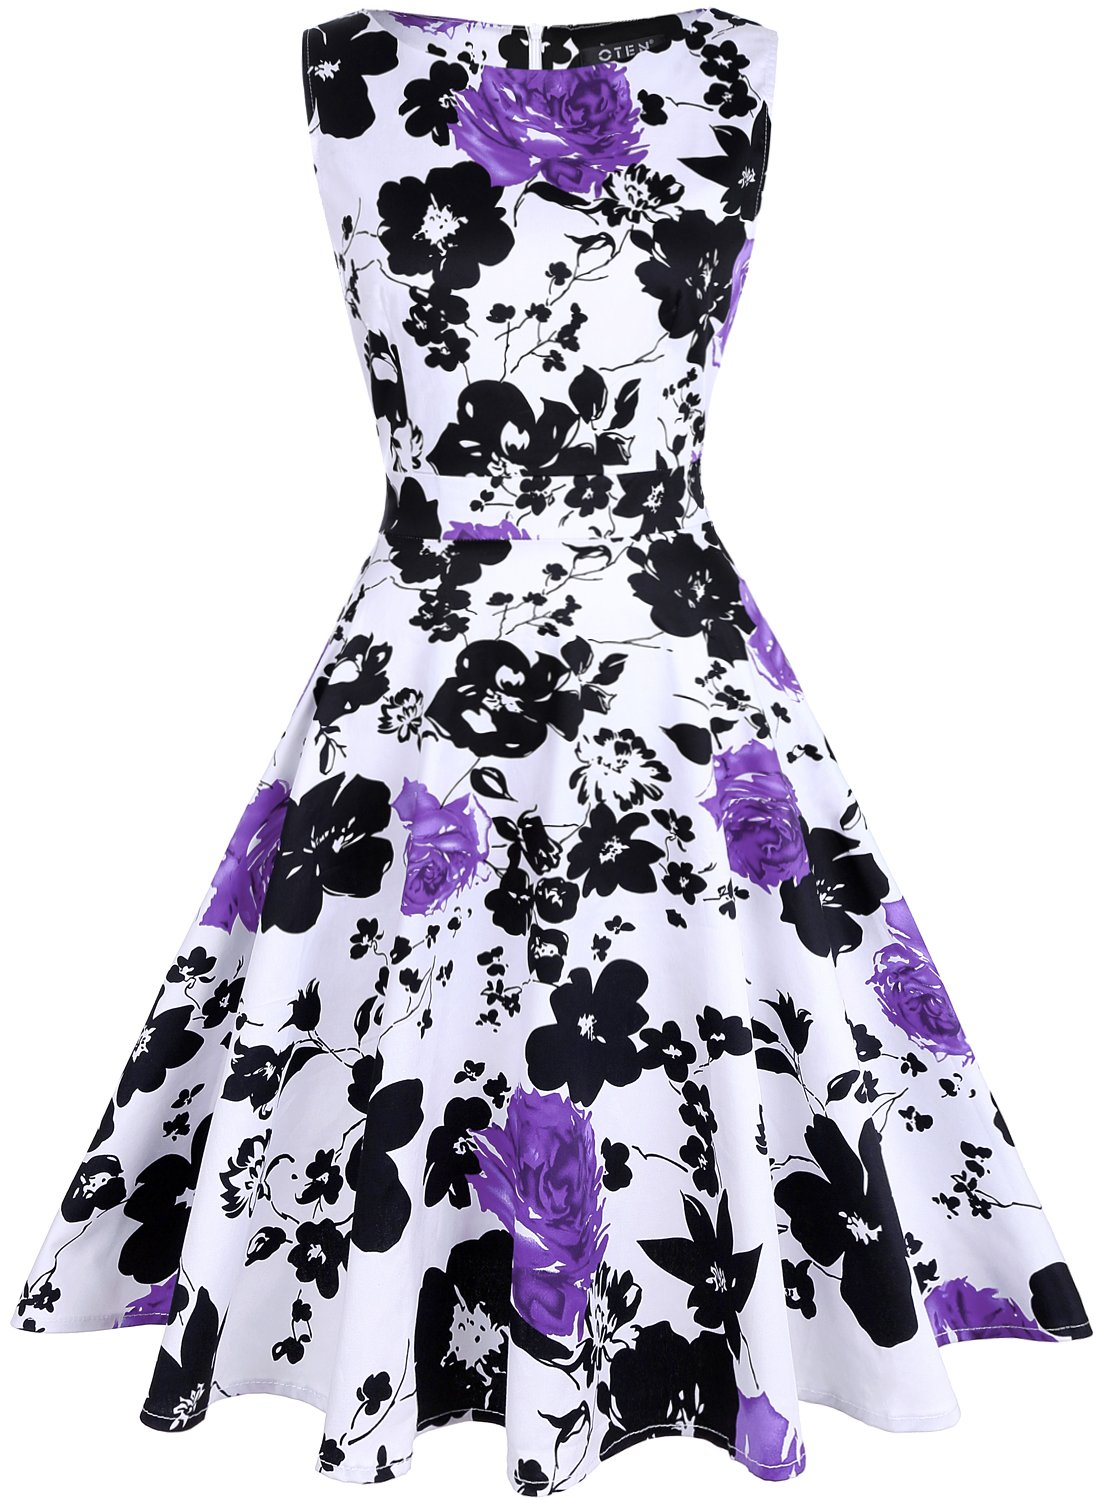 Available at Amazon: oten Women's Vintage 1950s Tea Dress Floral Spring Garden Party Rockabilly Cocktail Swing Dresses